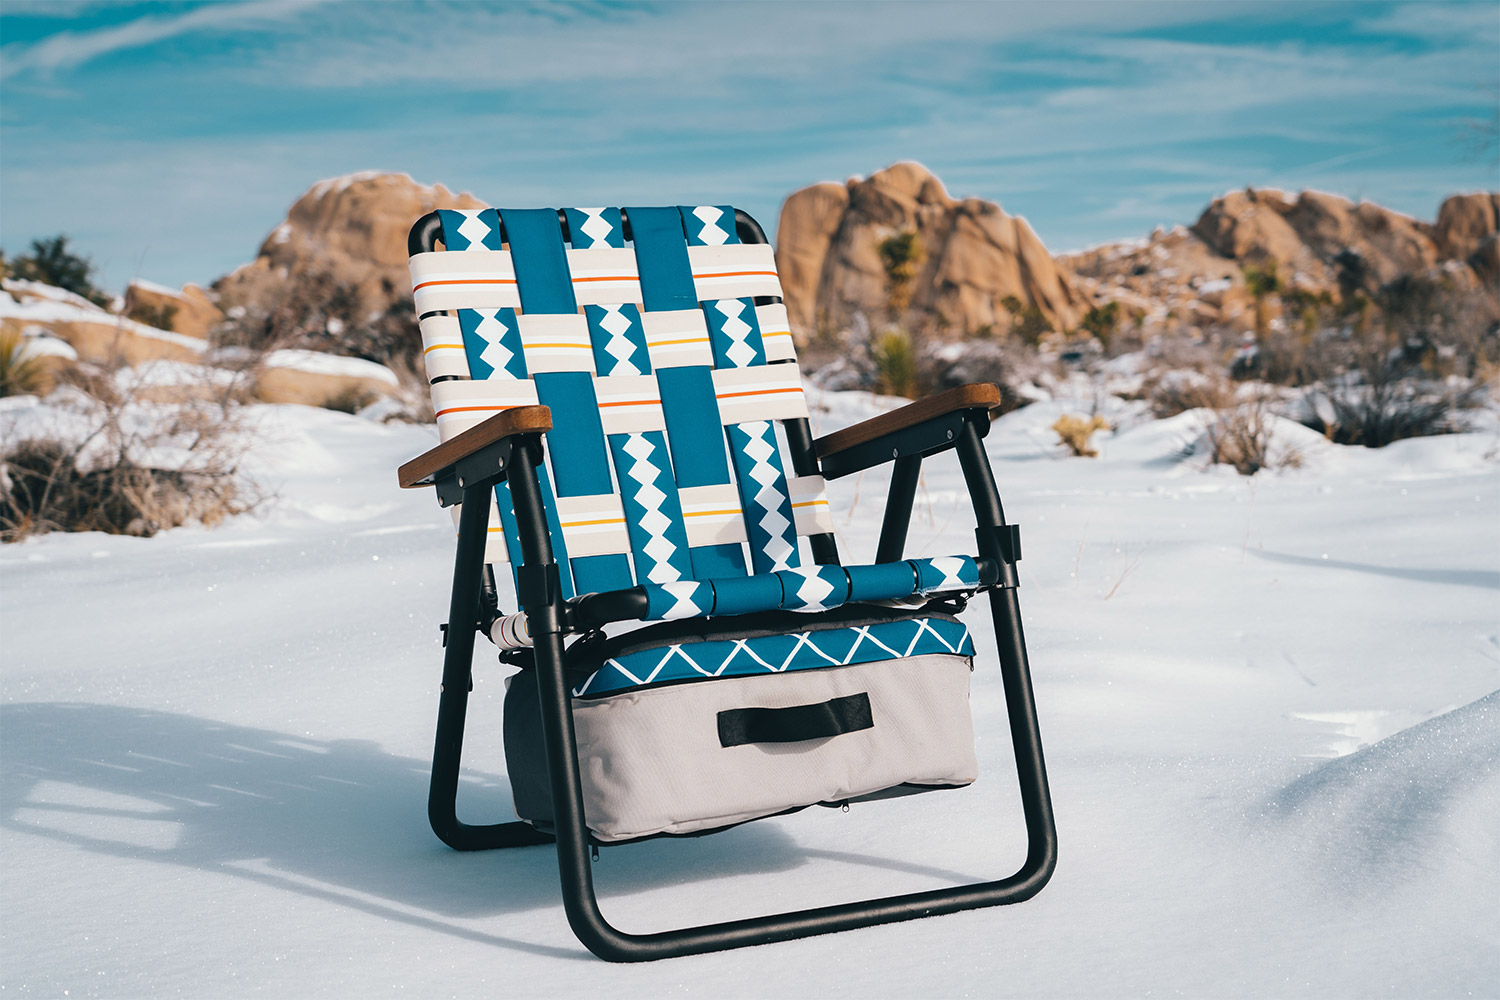 Parkit Voyager Is a 3-in-1 Lawn Chair, Cooler, And Backpack - Adventure folding lawn chair